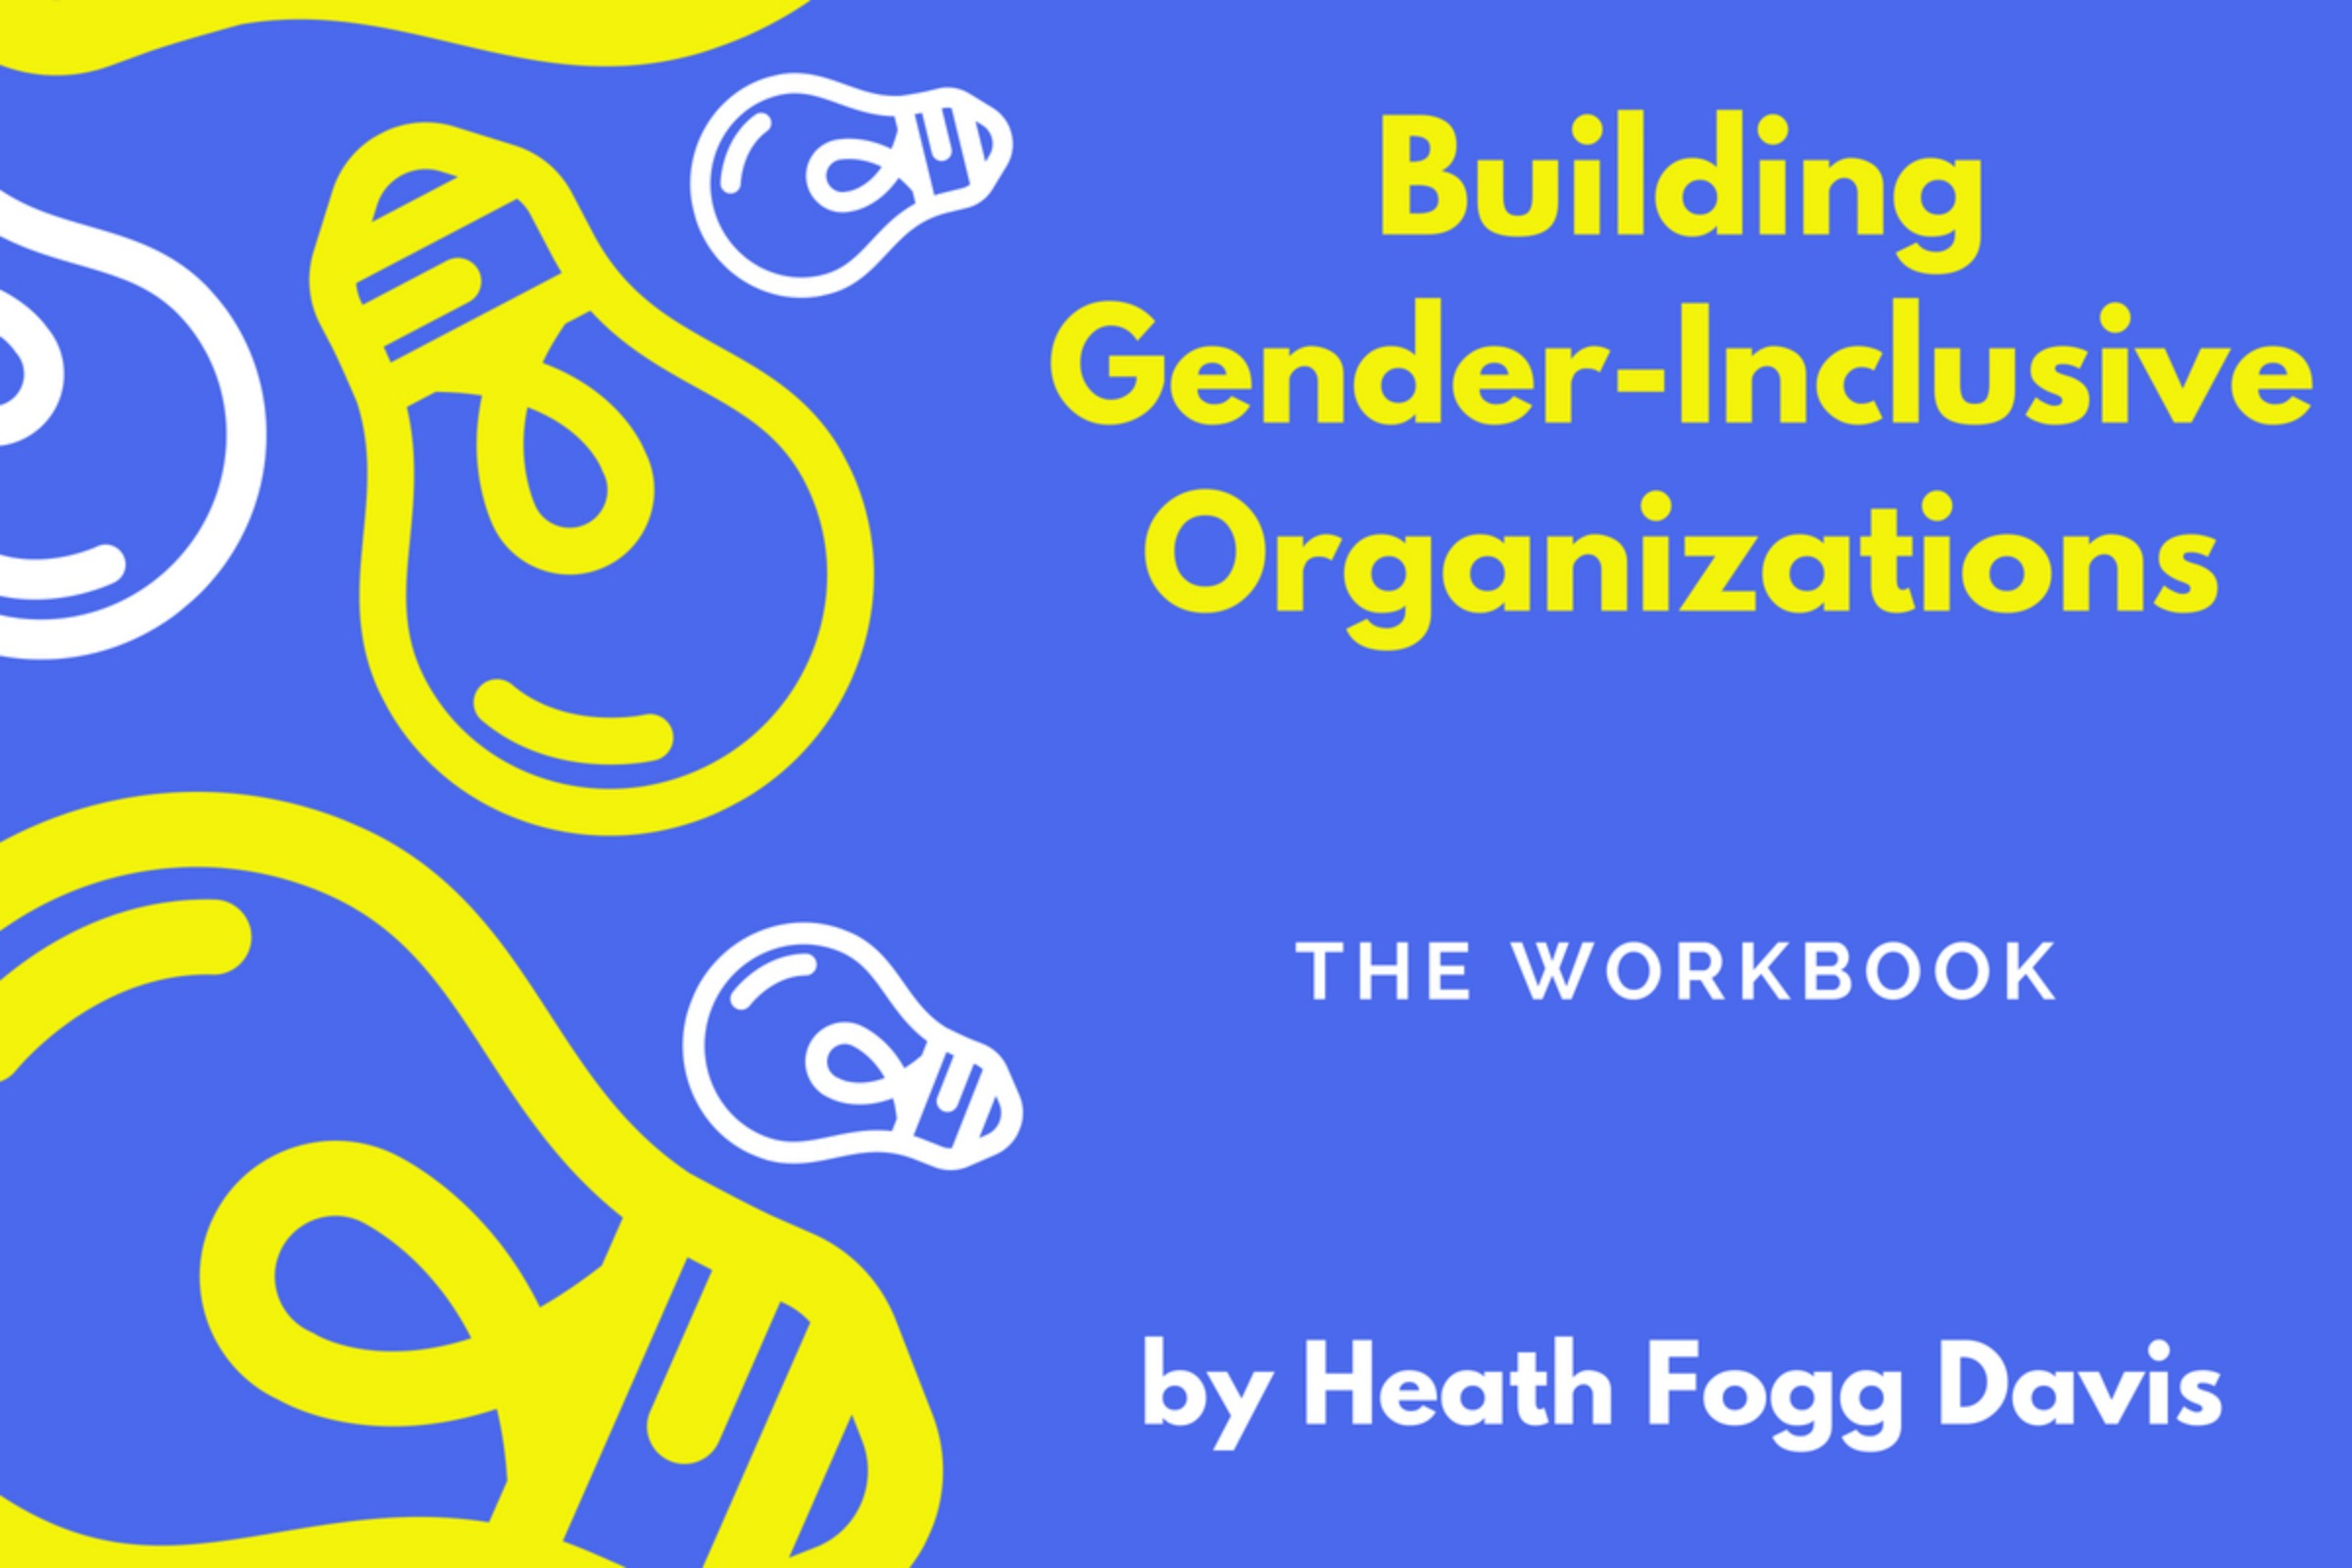 Building Gender-Inclusive Organizations: The Workbook (For Non-Profits please pay $15)